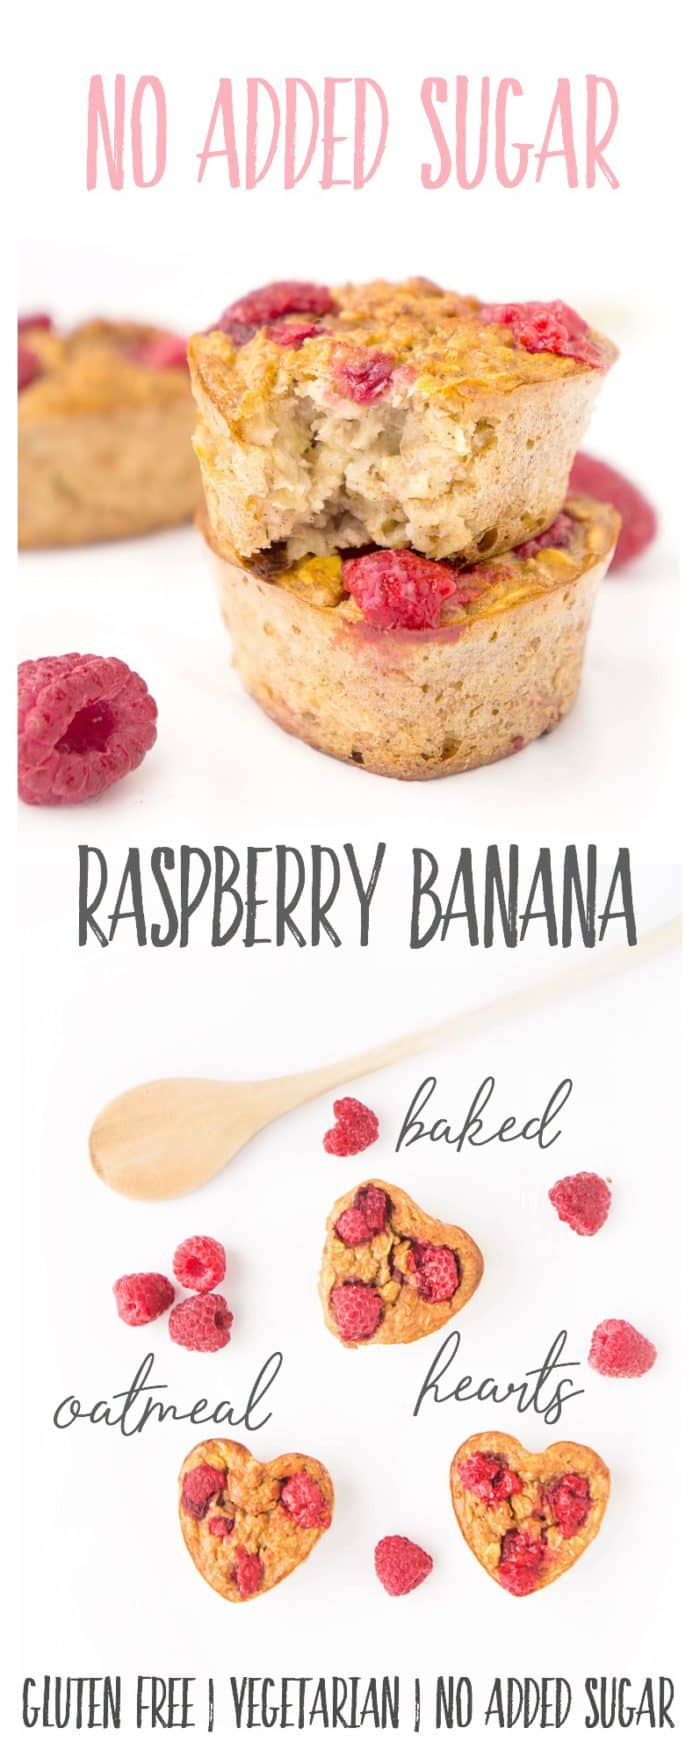 Raspberry Banana Baked Oatmeal Hearts